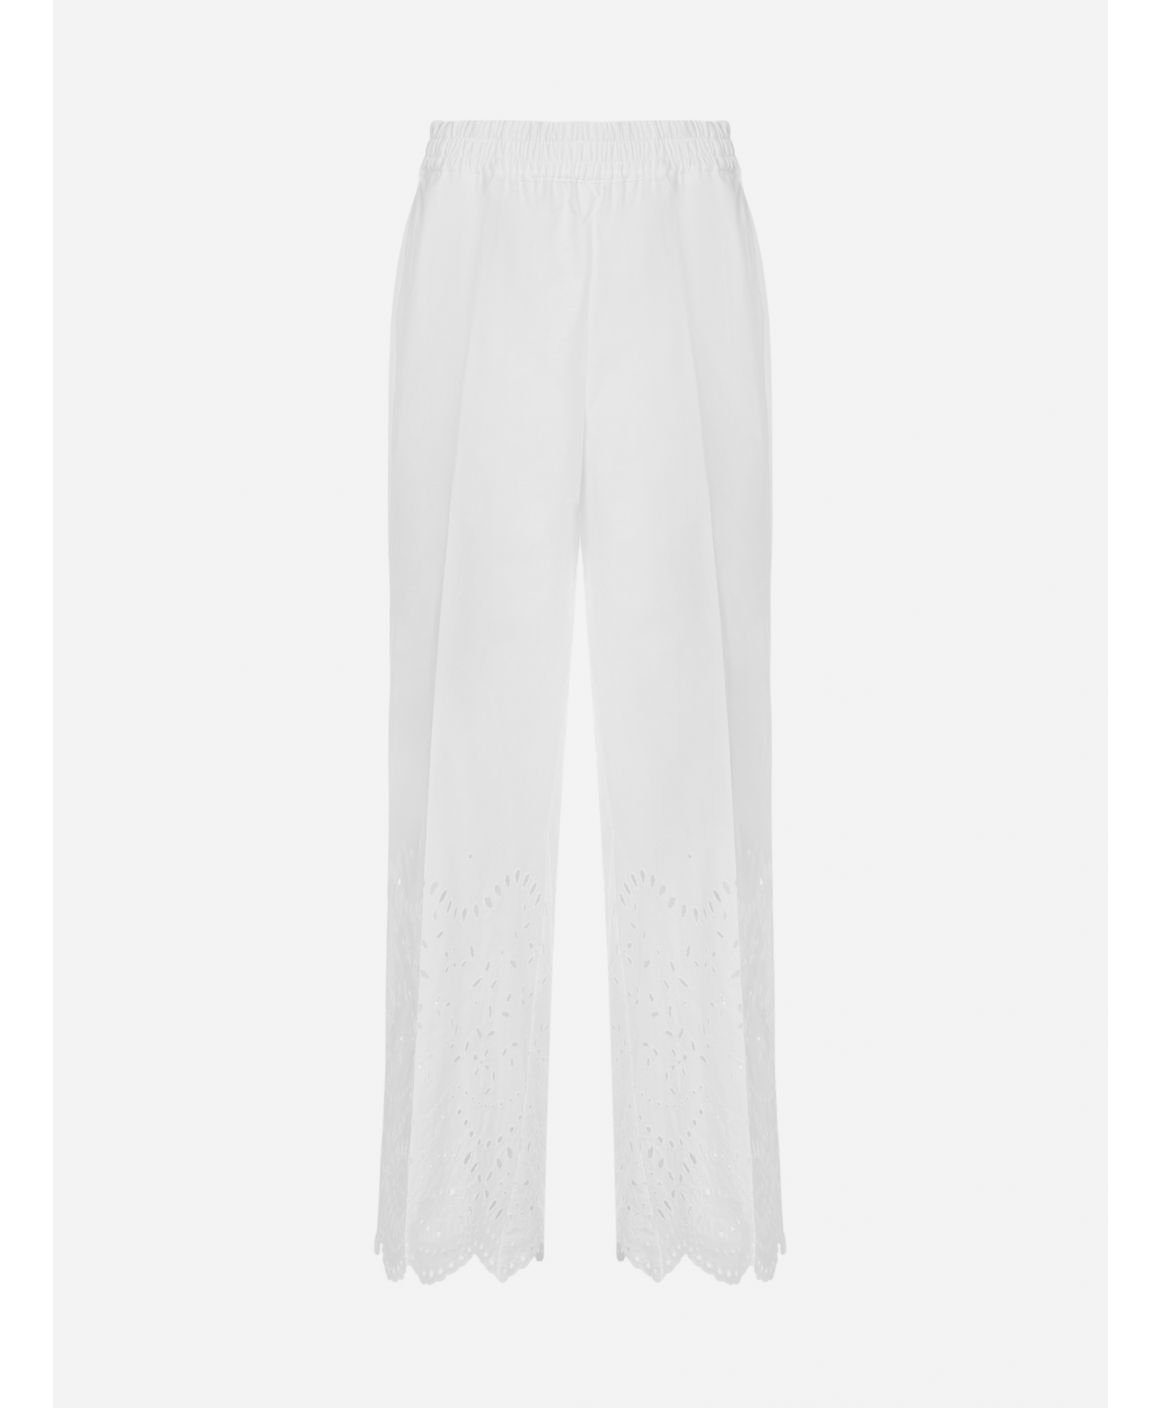 Cosan broderie anglaise cotton trousers